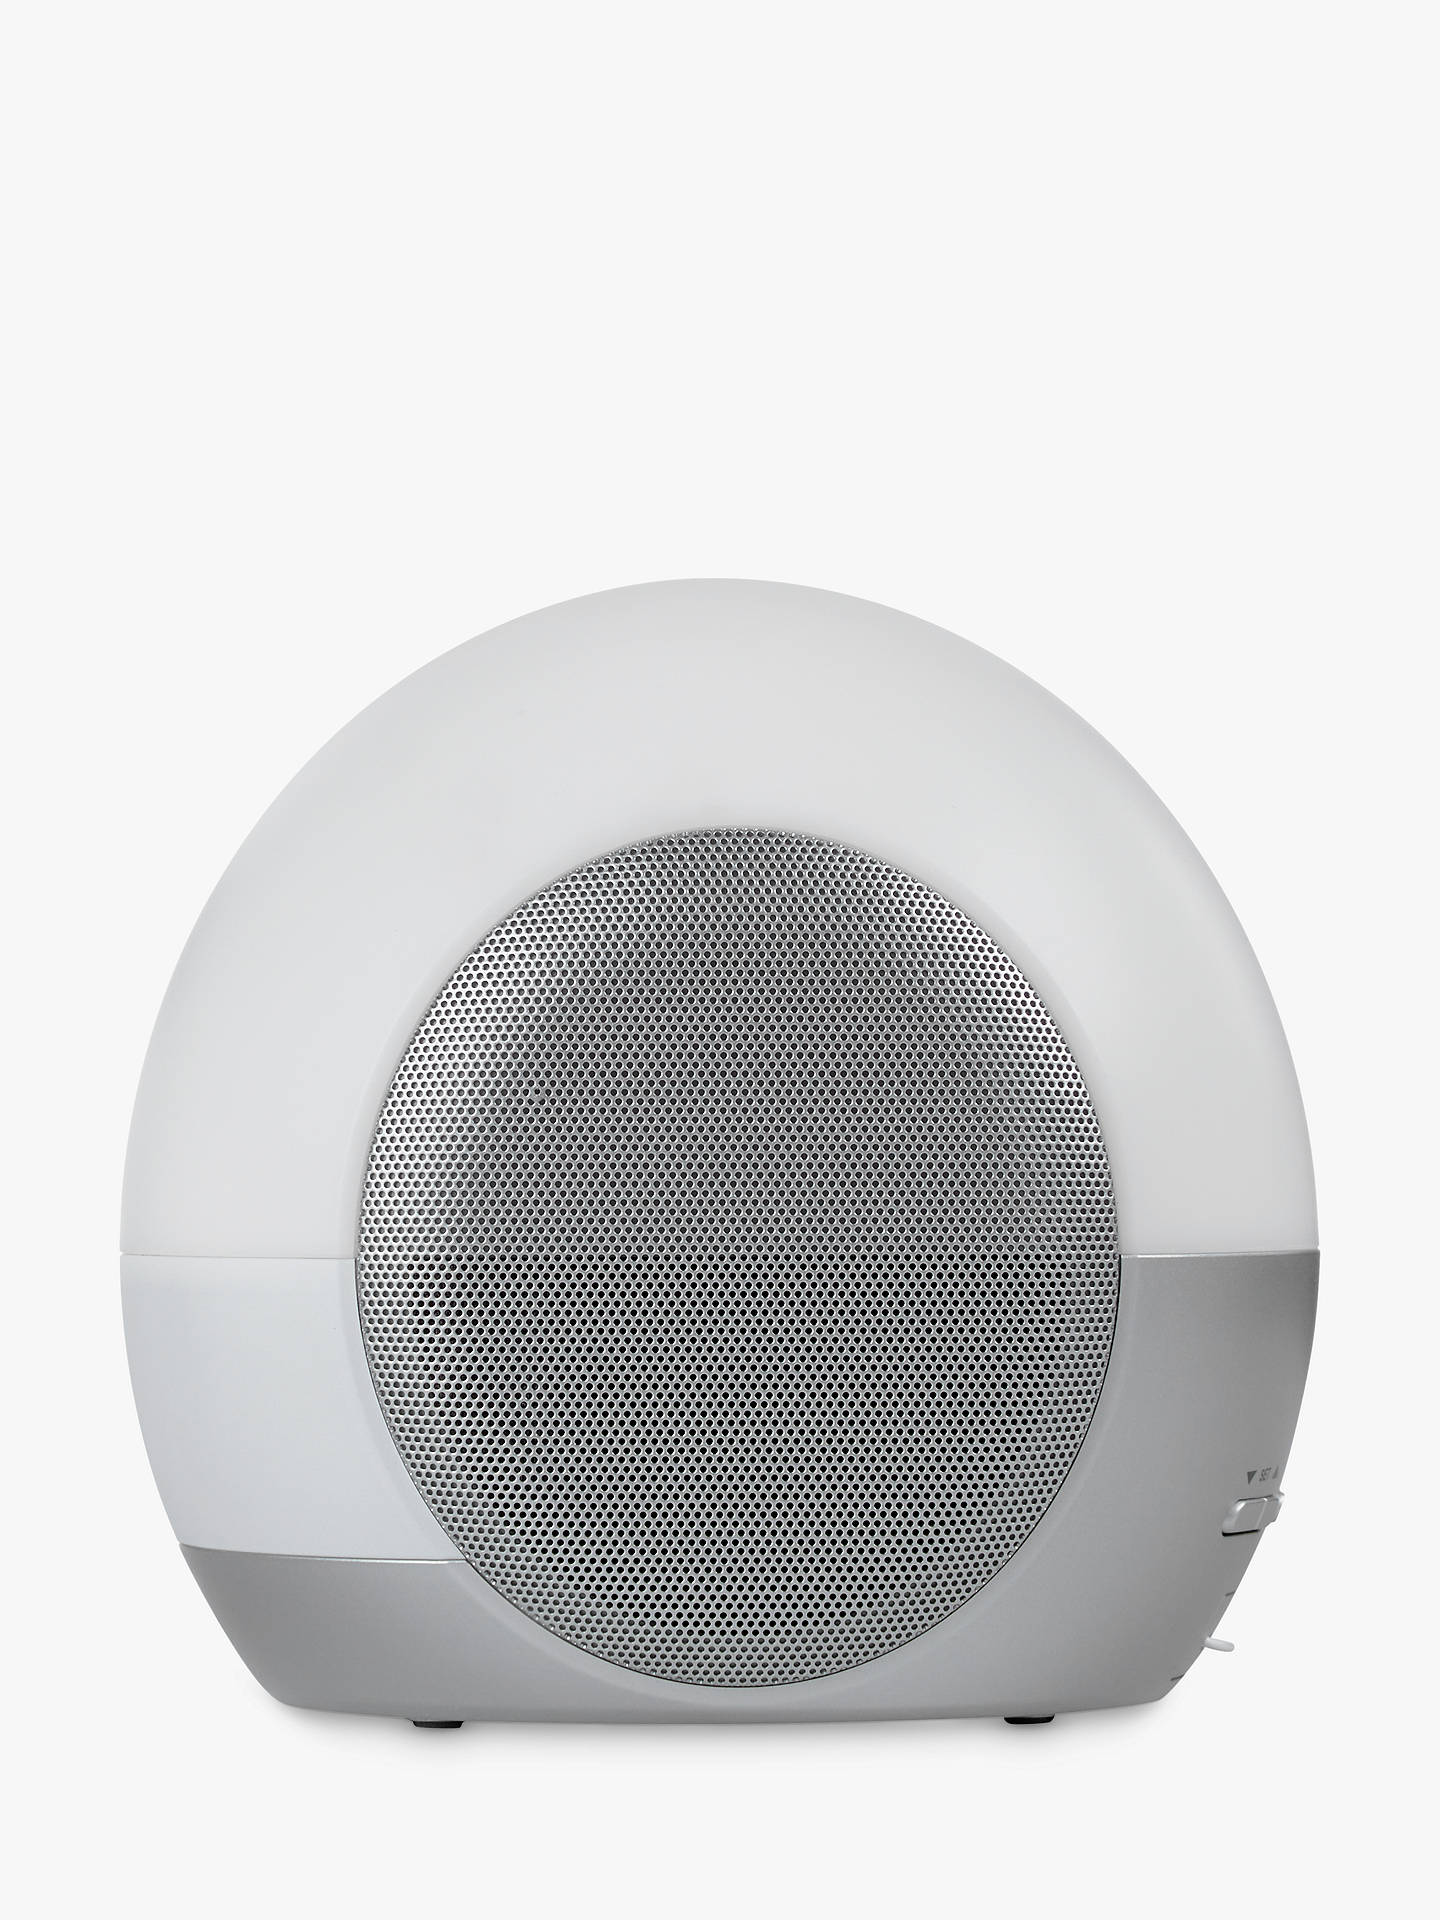 Buy Beurer WL 90 4-in-1 Wake Up Light, White Online at johnlewis.com